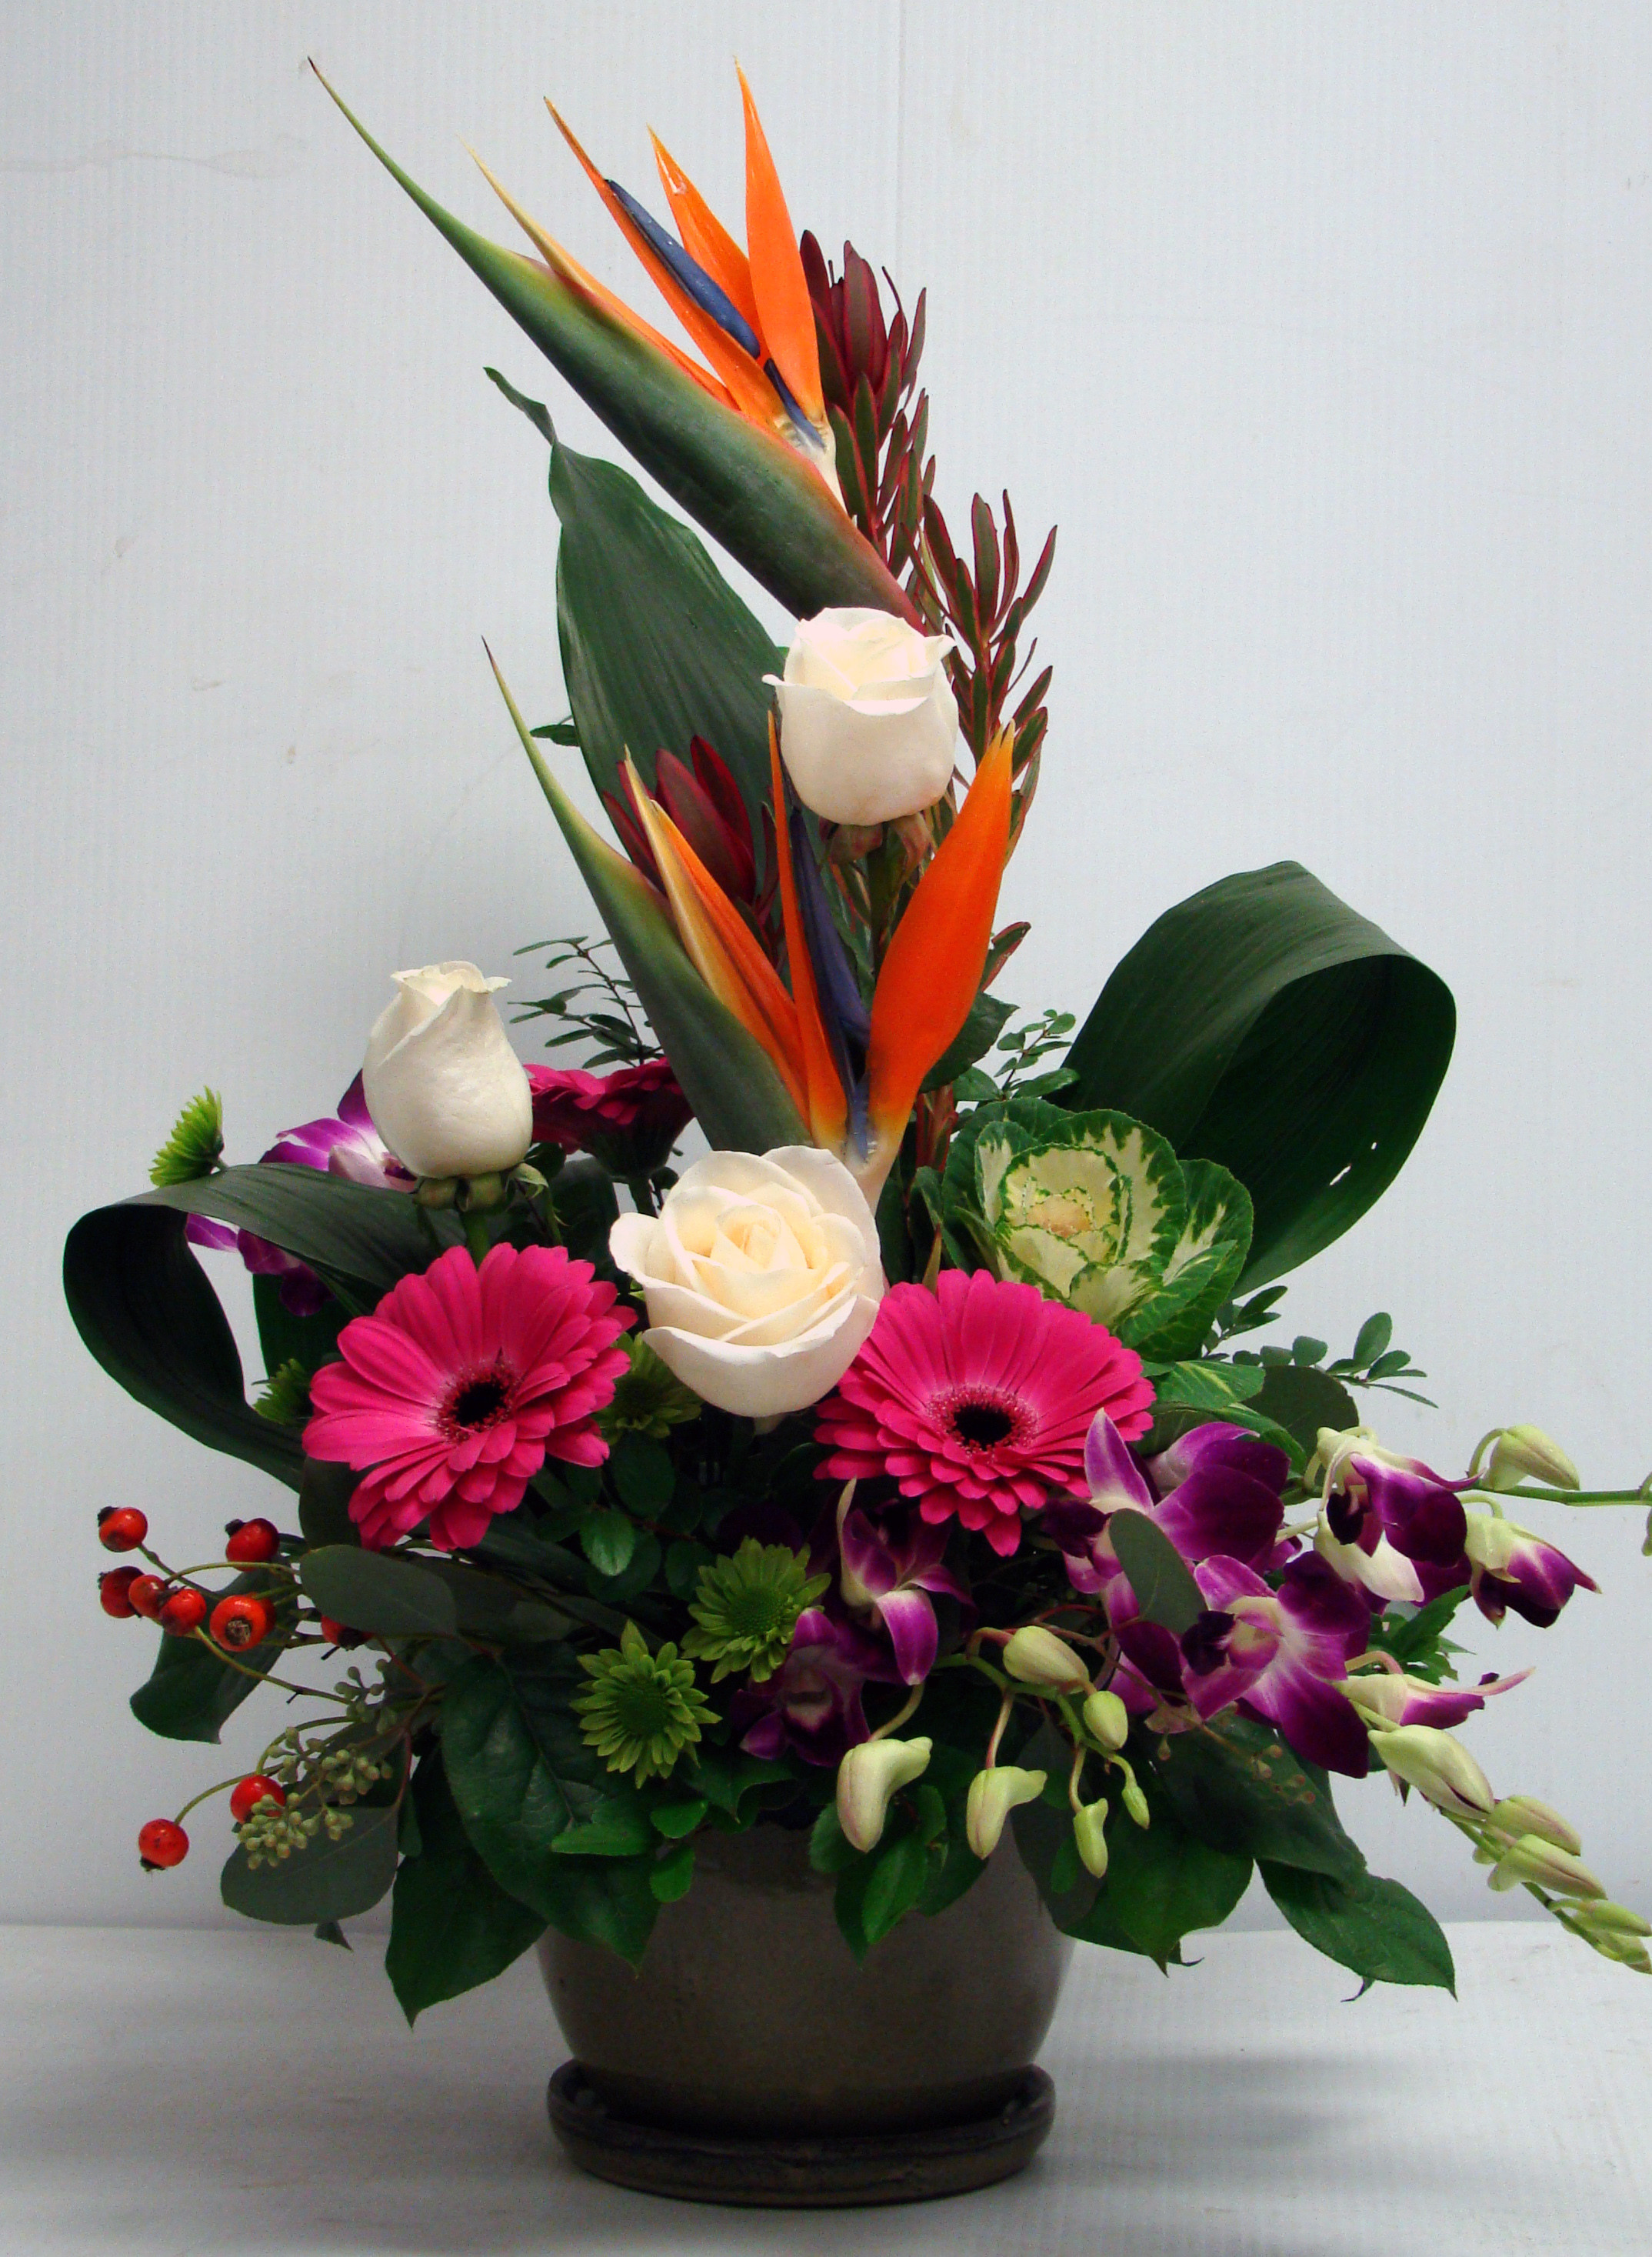 Res: 2148x2934, JNS-042 IKEBANA WITH TROPICAL